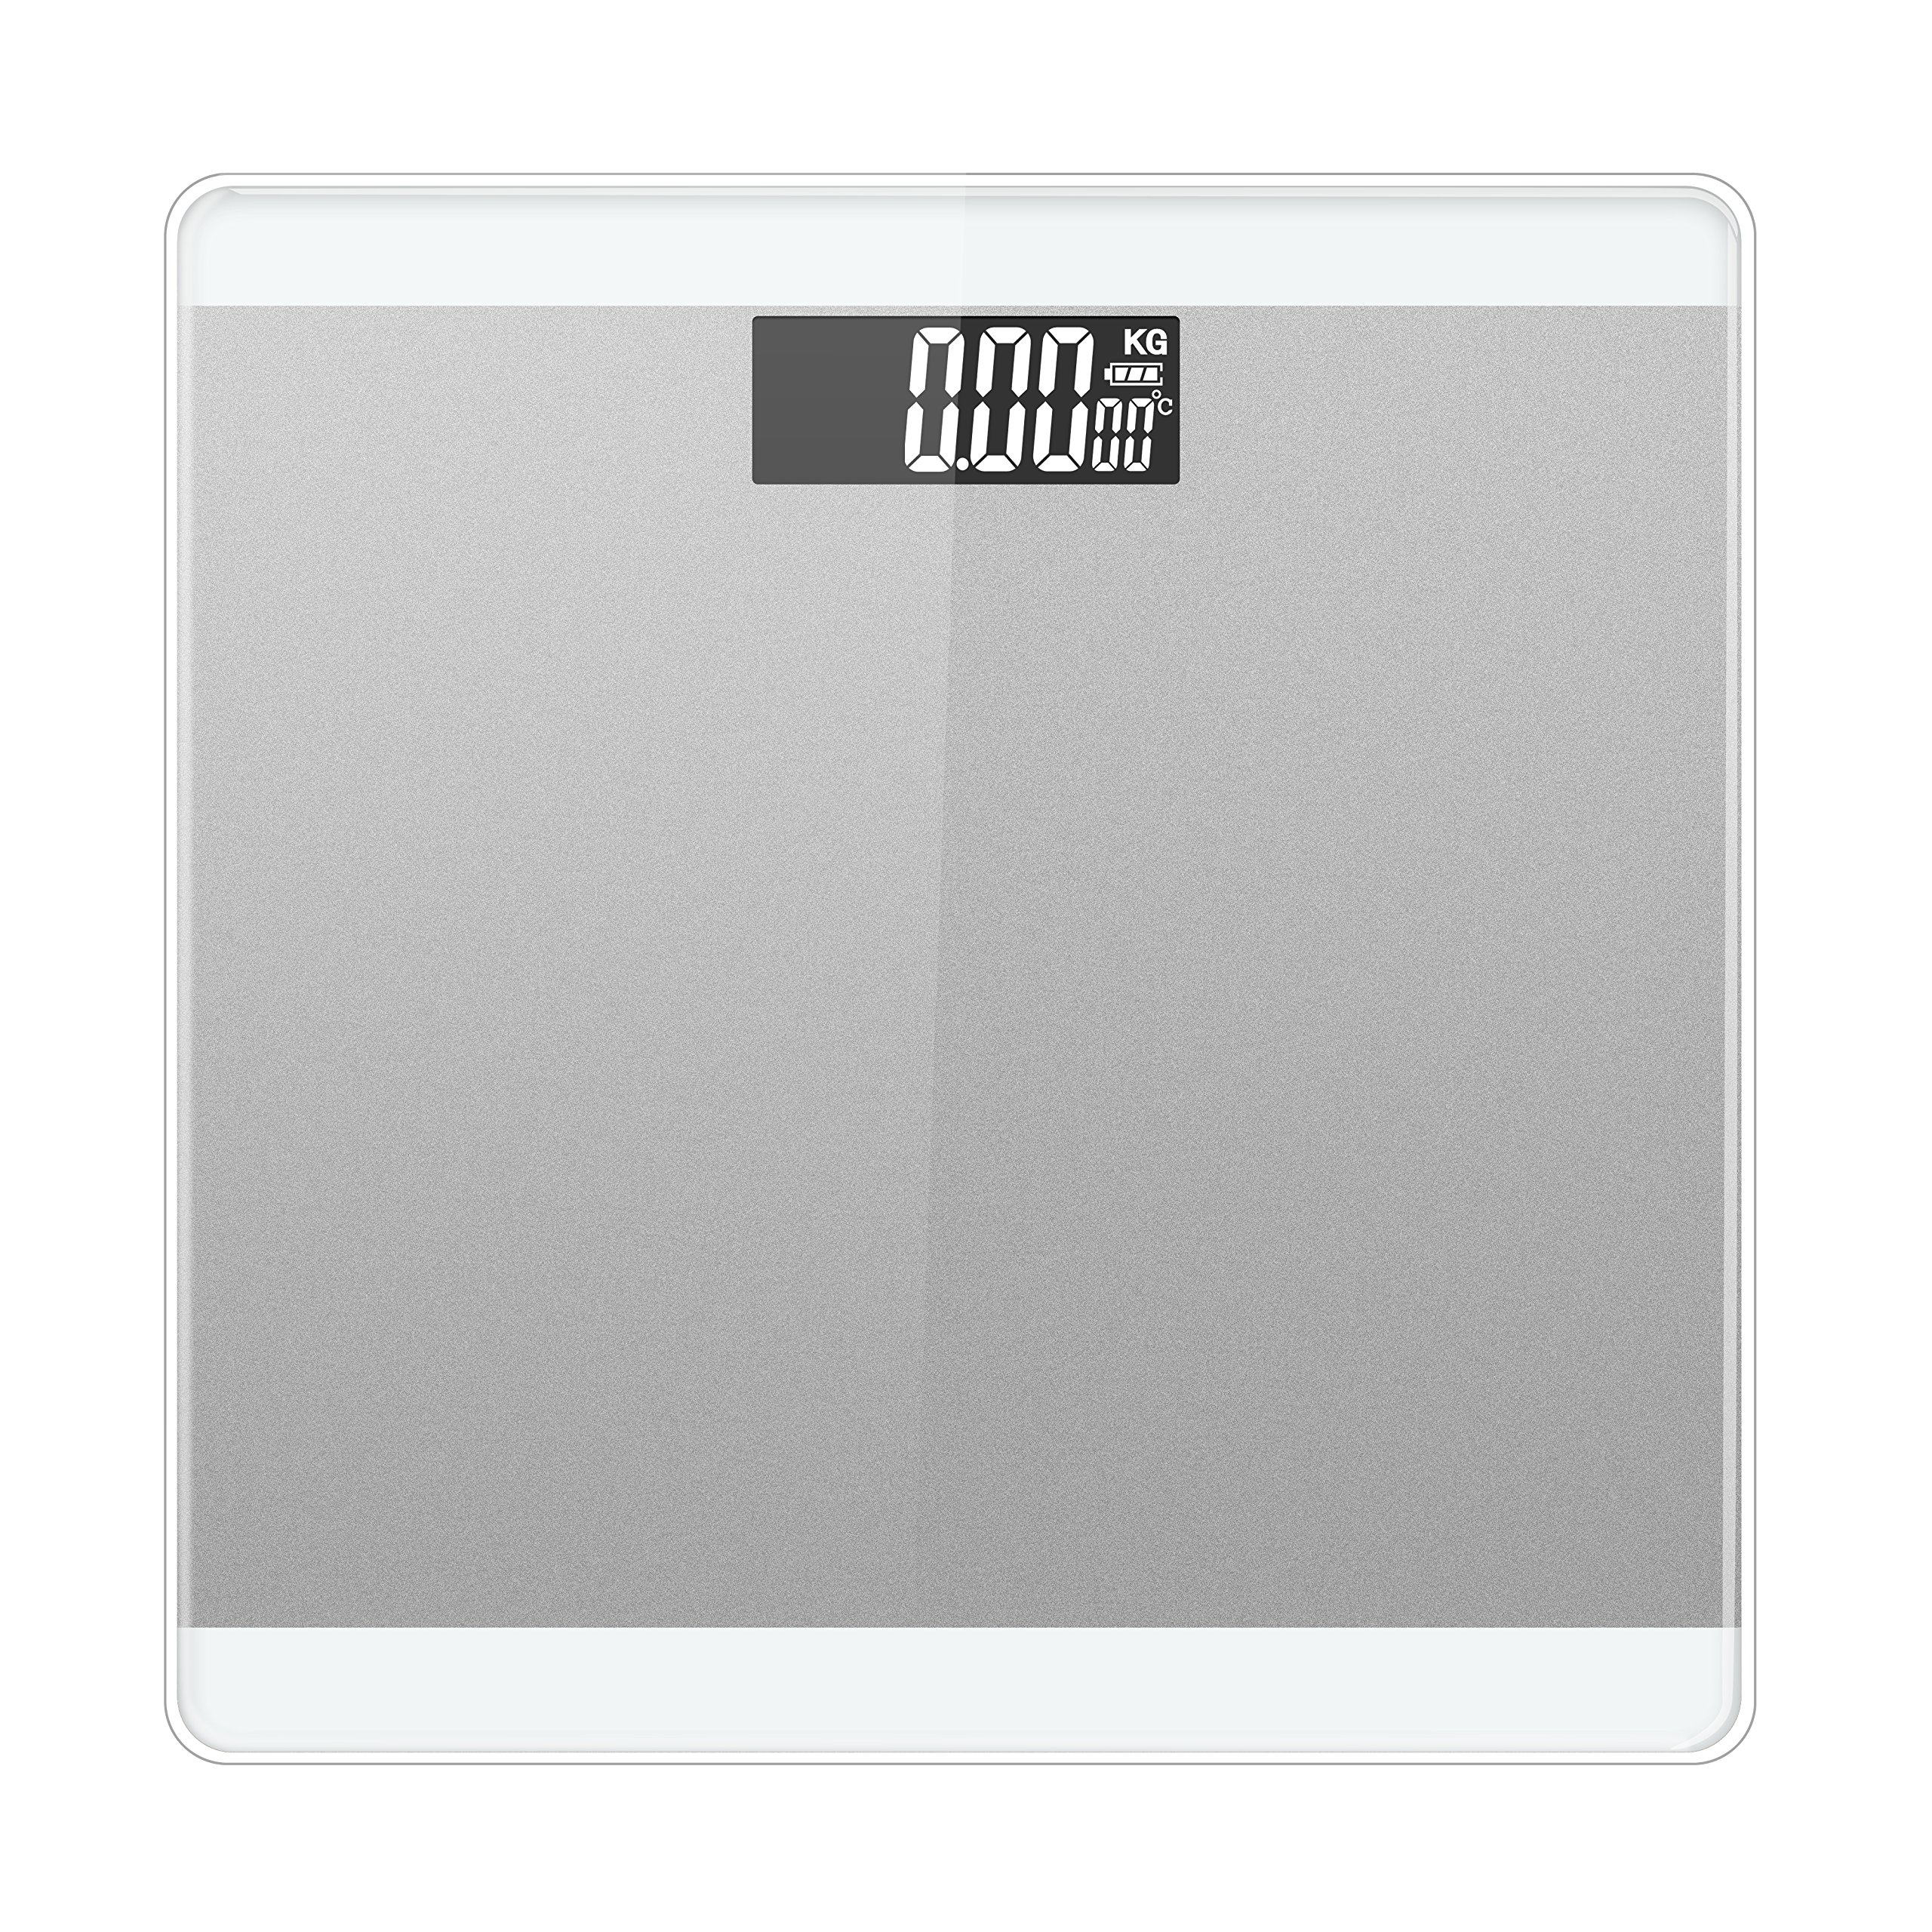 LUOYIMAN Body Weight Scale Digital High Accuracy 180kg/396lb (Silver)